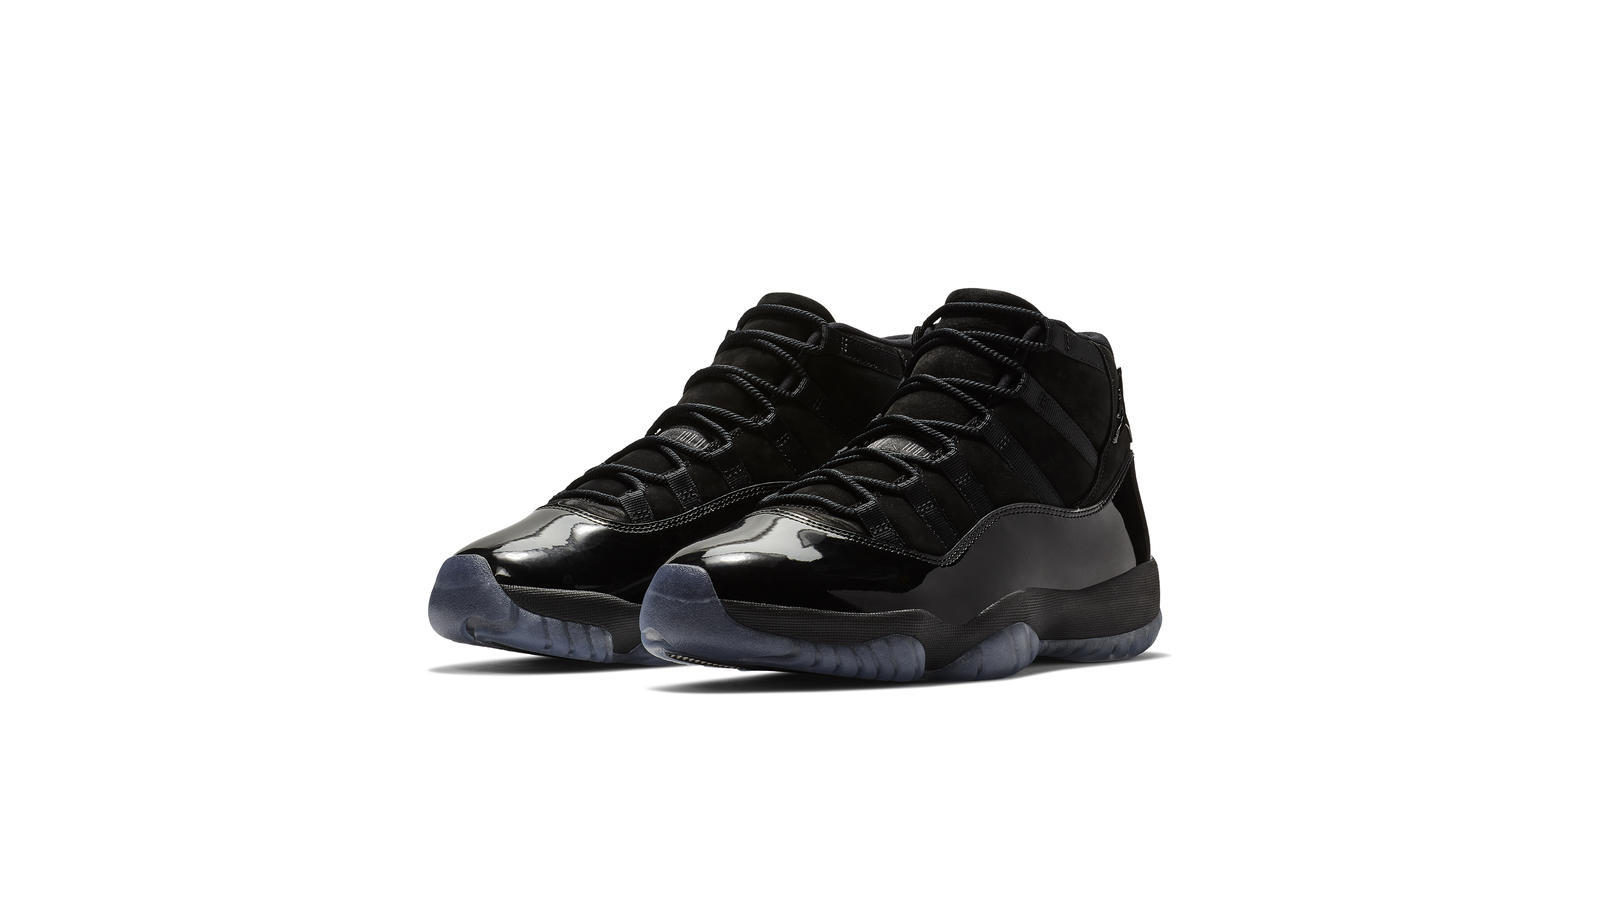 promo code deac0 87446 Air Jordan XI Cap and Gown 0